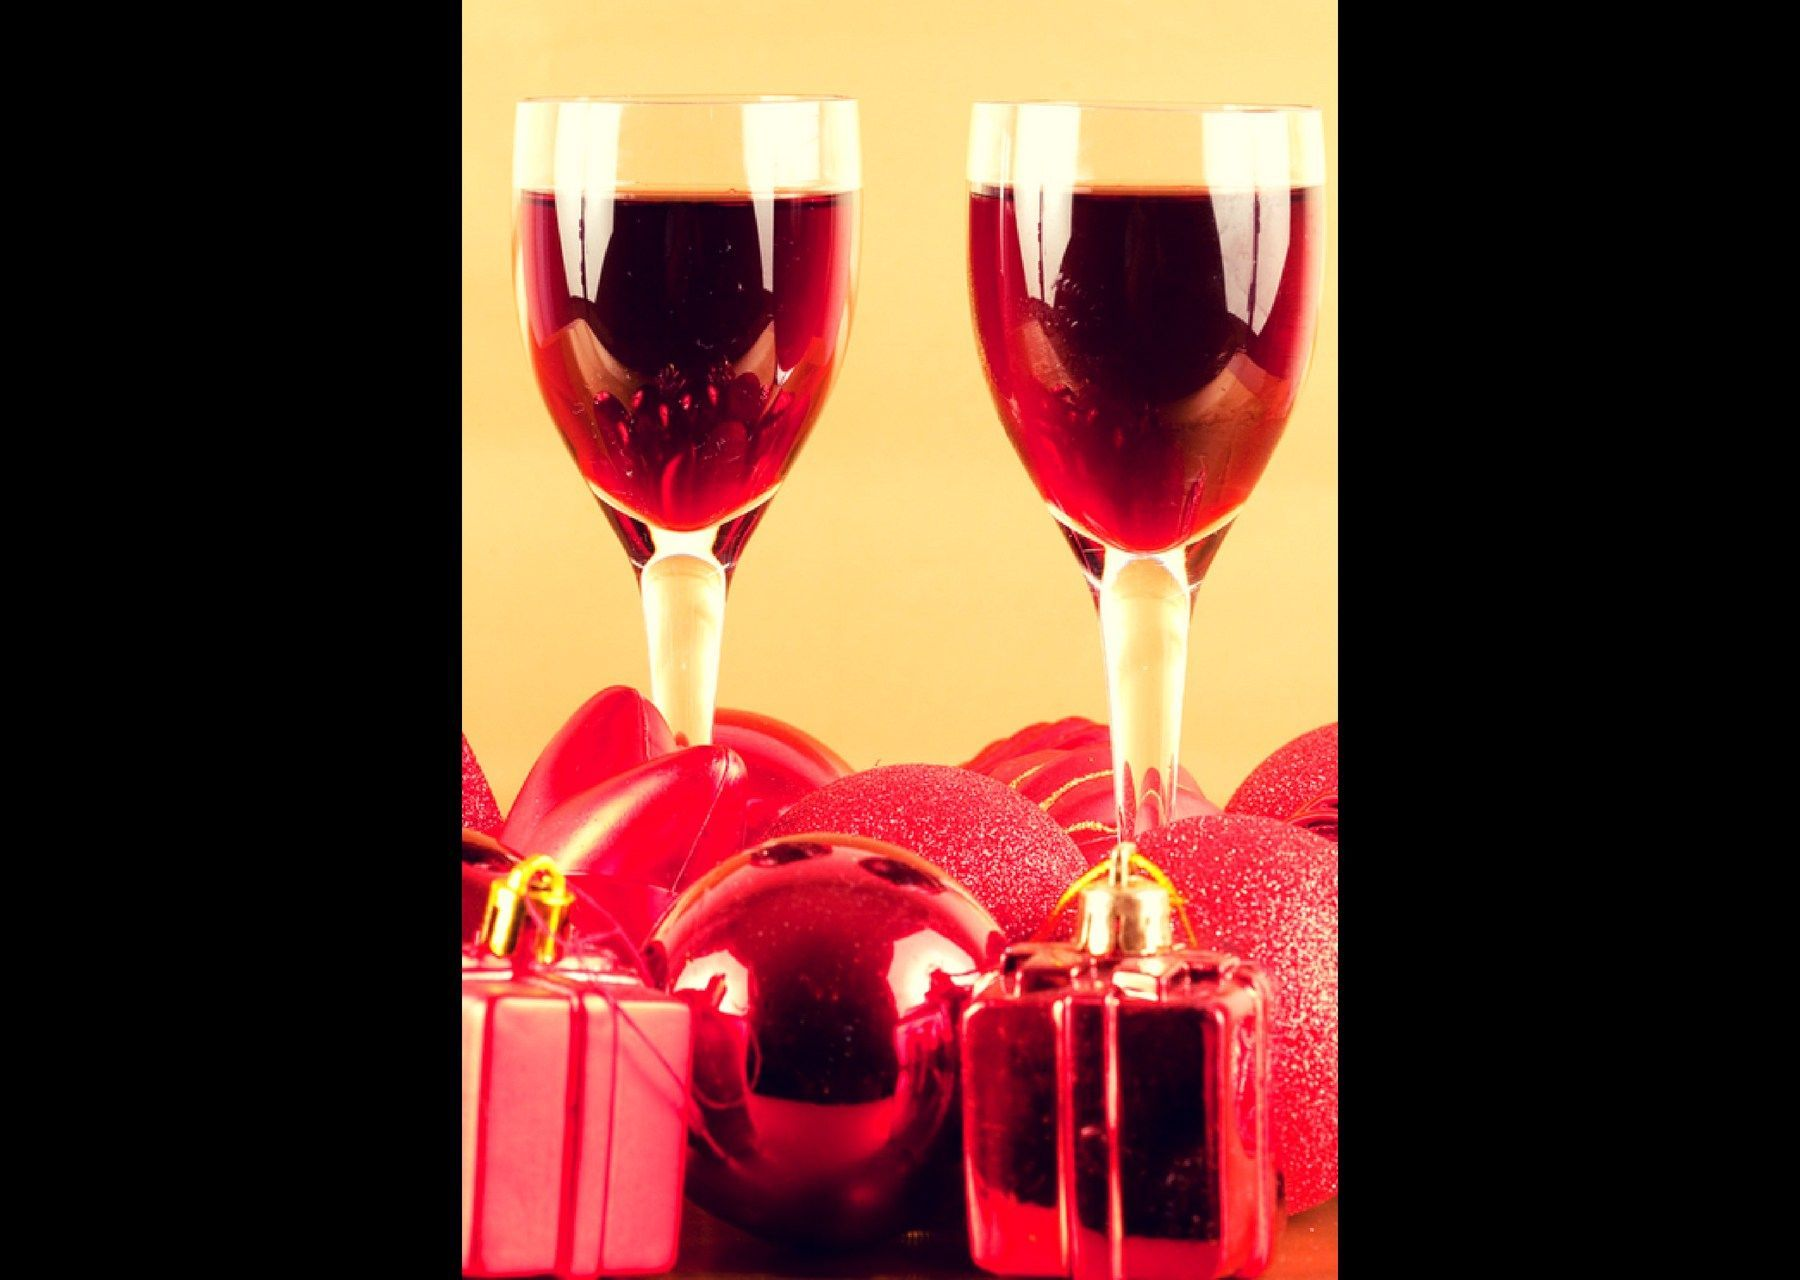 Enjoy This Sip Of Wintertime Wine Celebrations Https Ckjyexports Net 2019 12 03 Wine Holiday Celebrations Ar Holiday Wine Wine Celebration Wine And Spirits